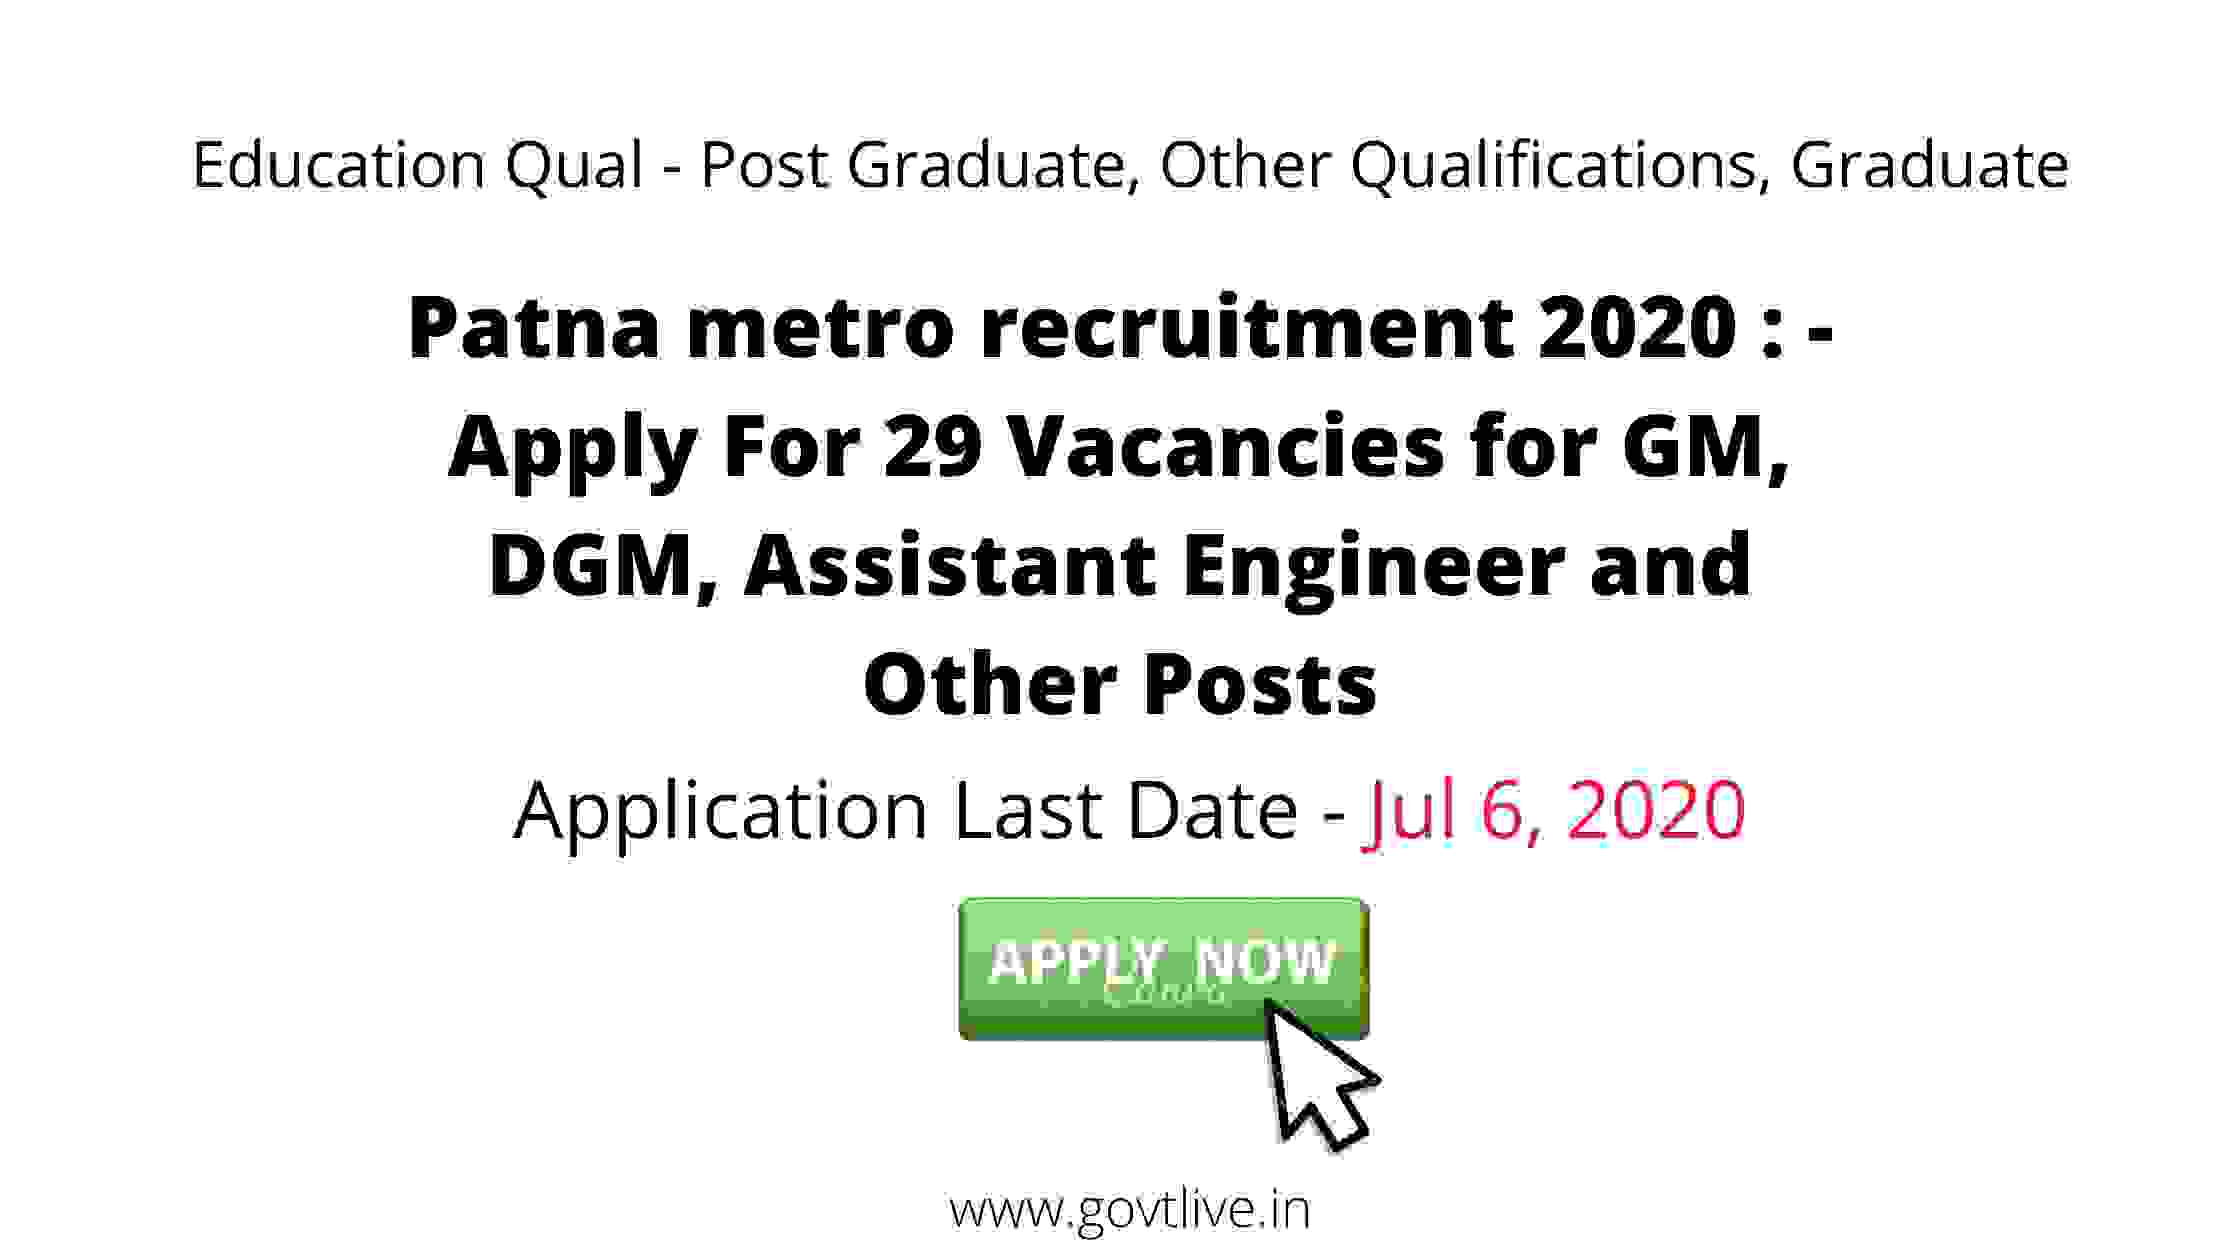 Patna metro recruitment 2020 : - Apply For 29 Vacancies for GM, DGM, Assistant Engineer and Other Posts | Bihar Goverment Jobs |